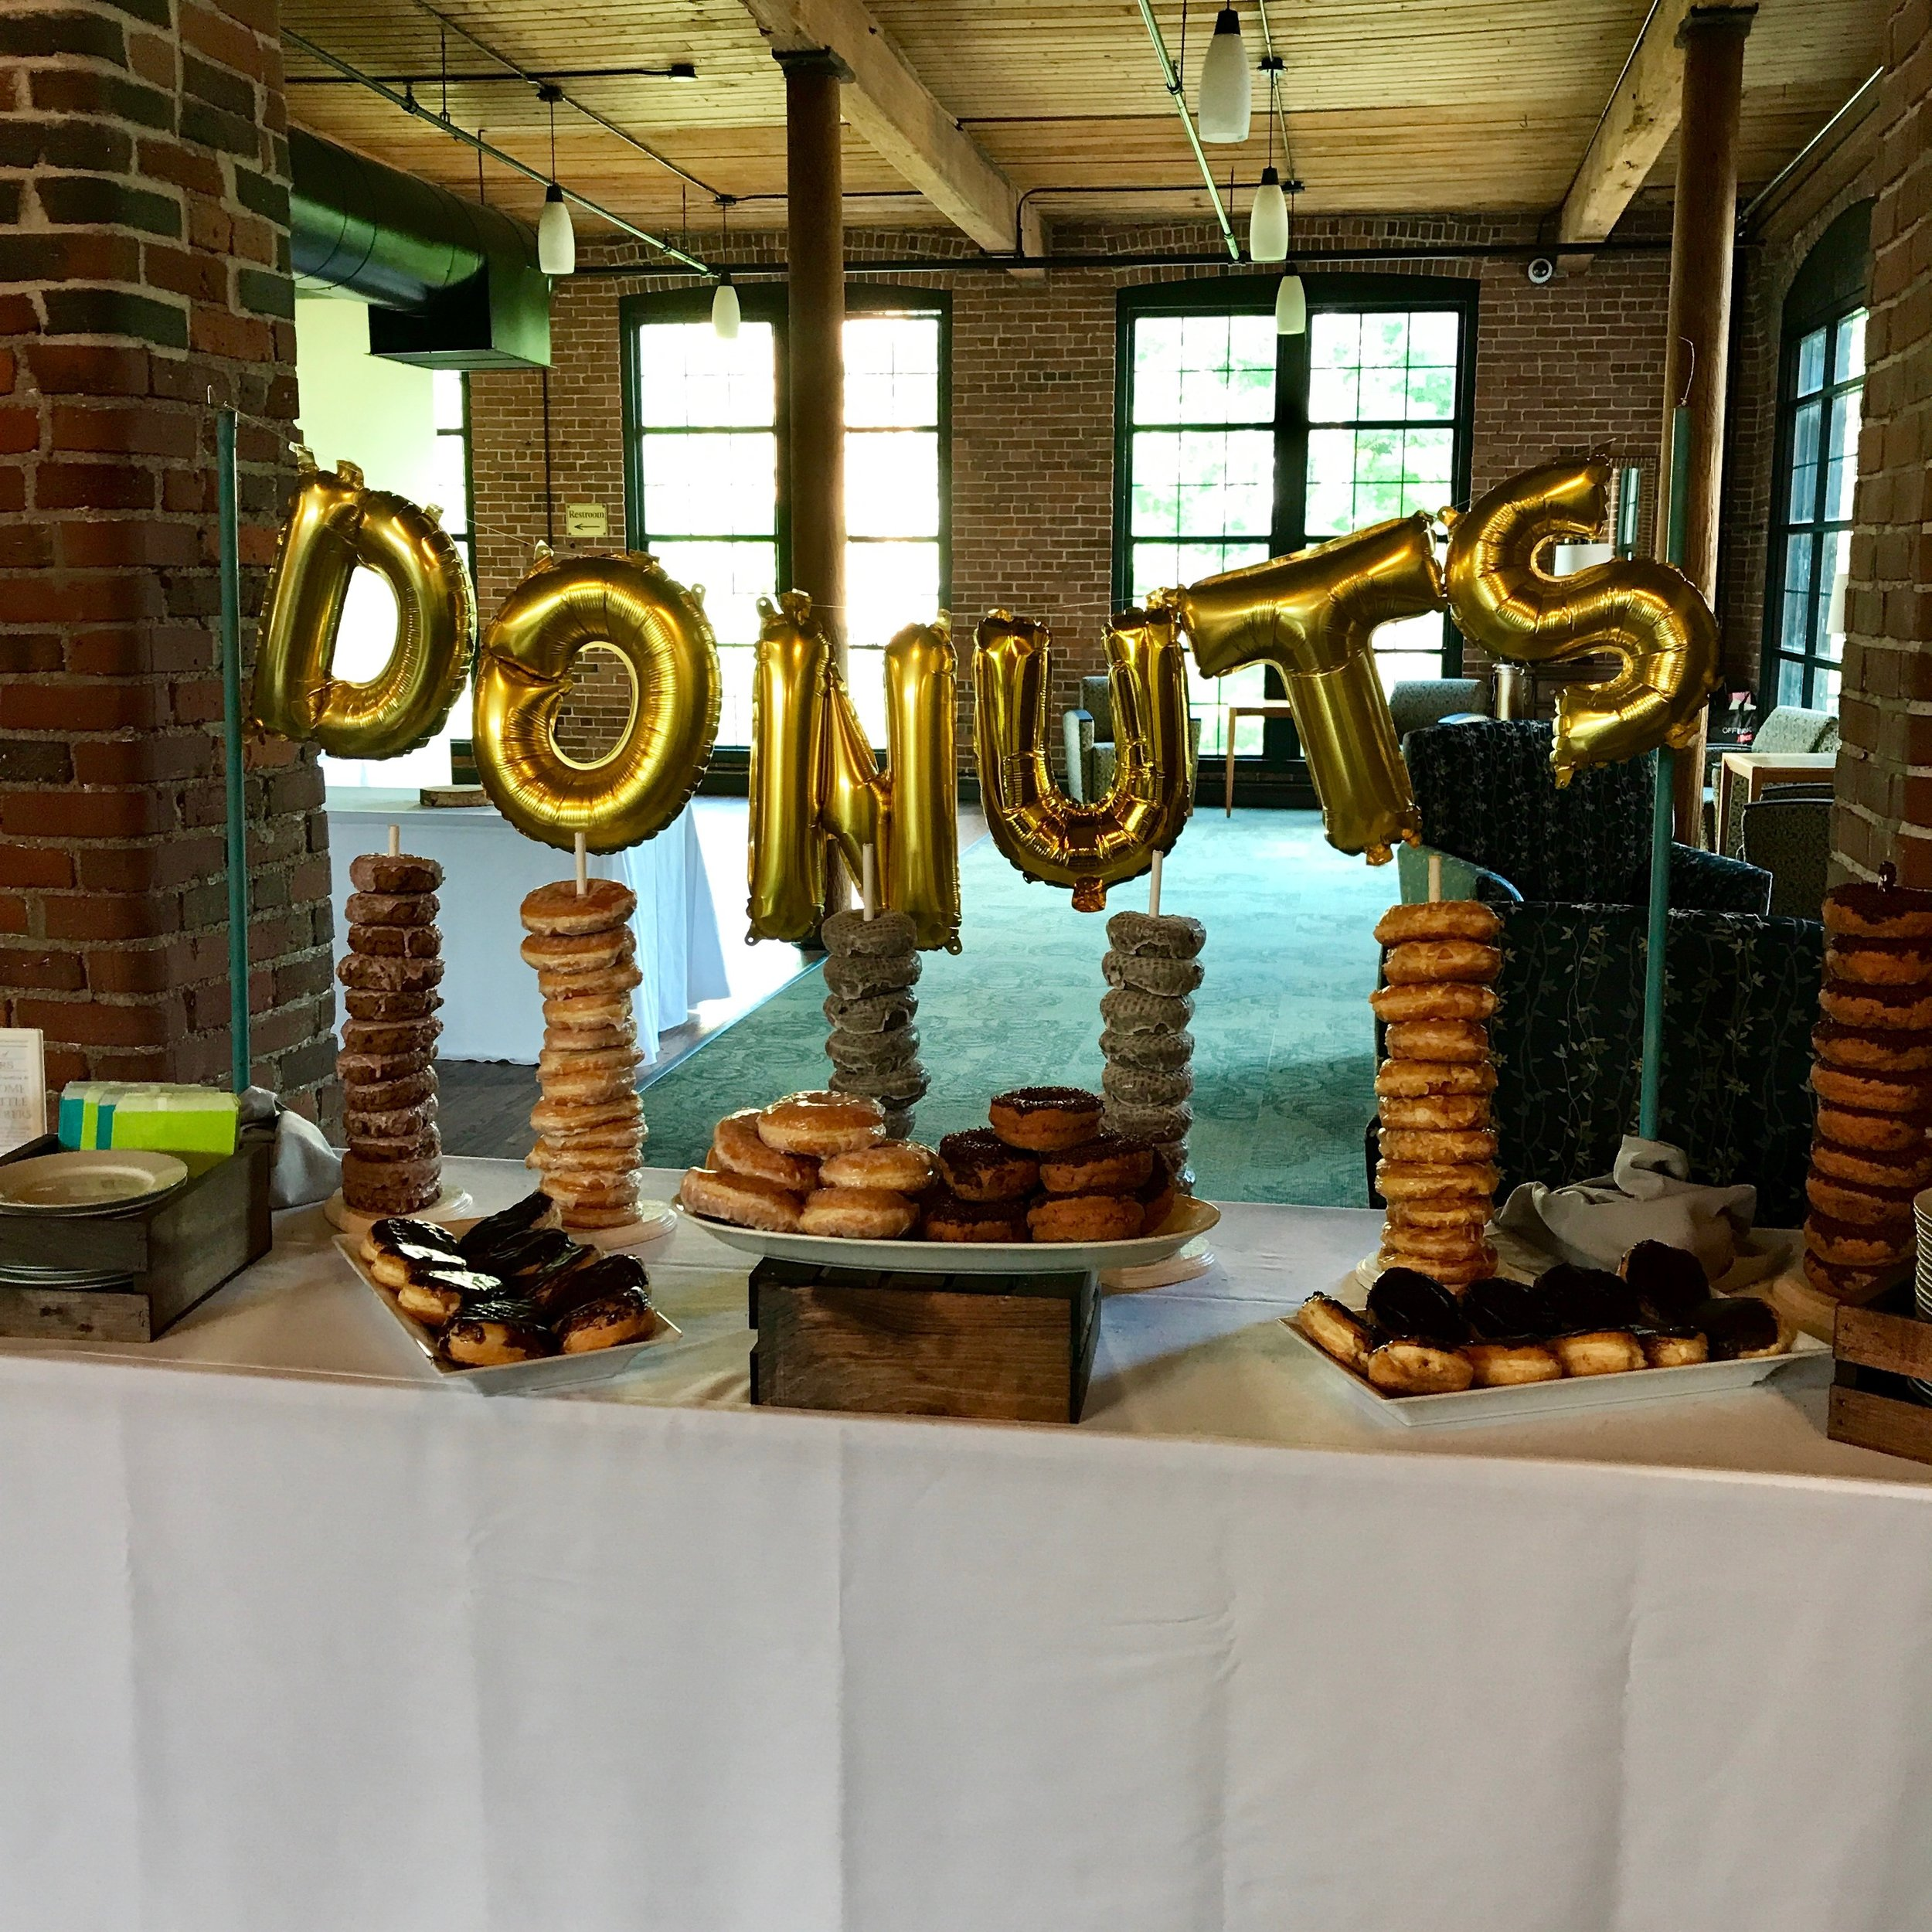 Sorry, there are no donuts - Just updates!